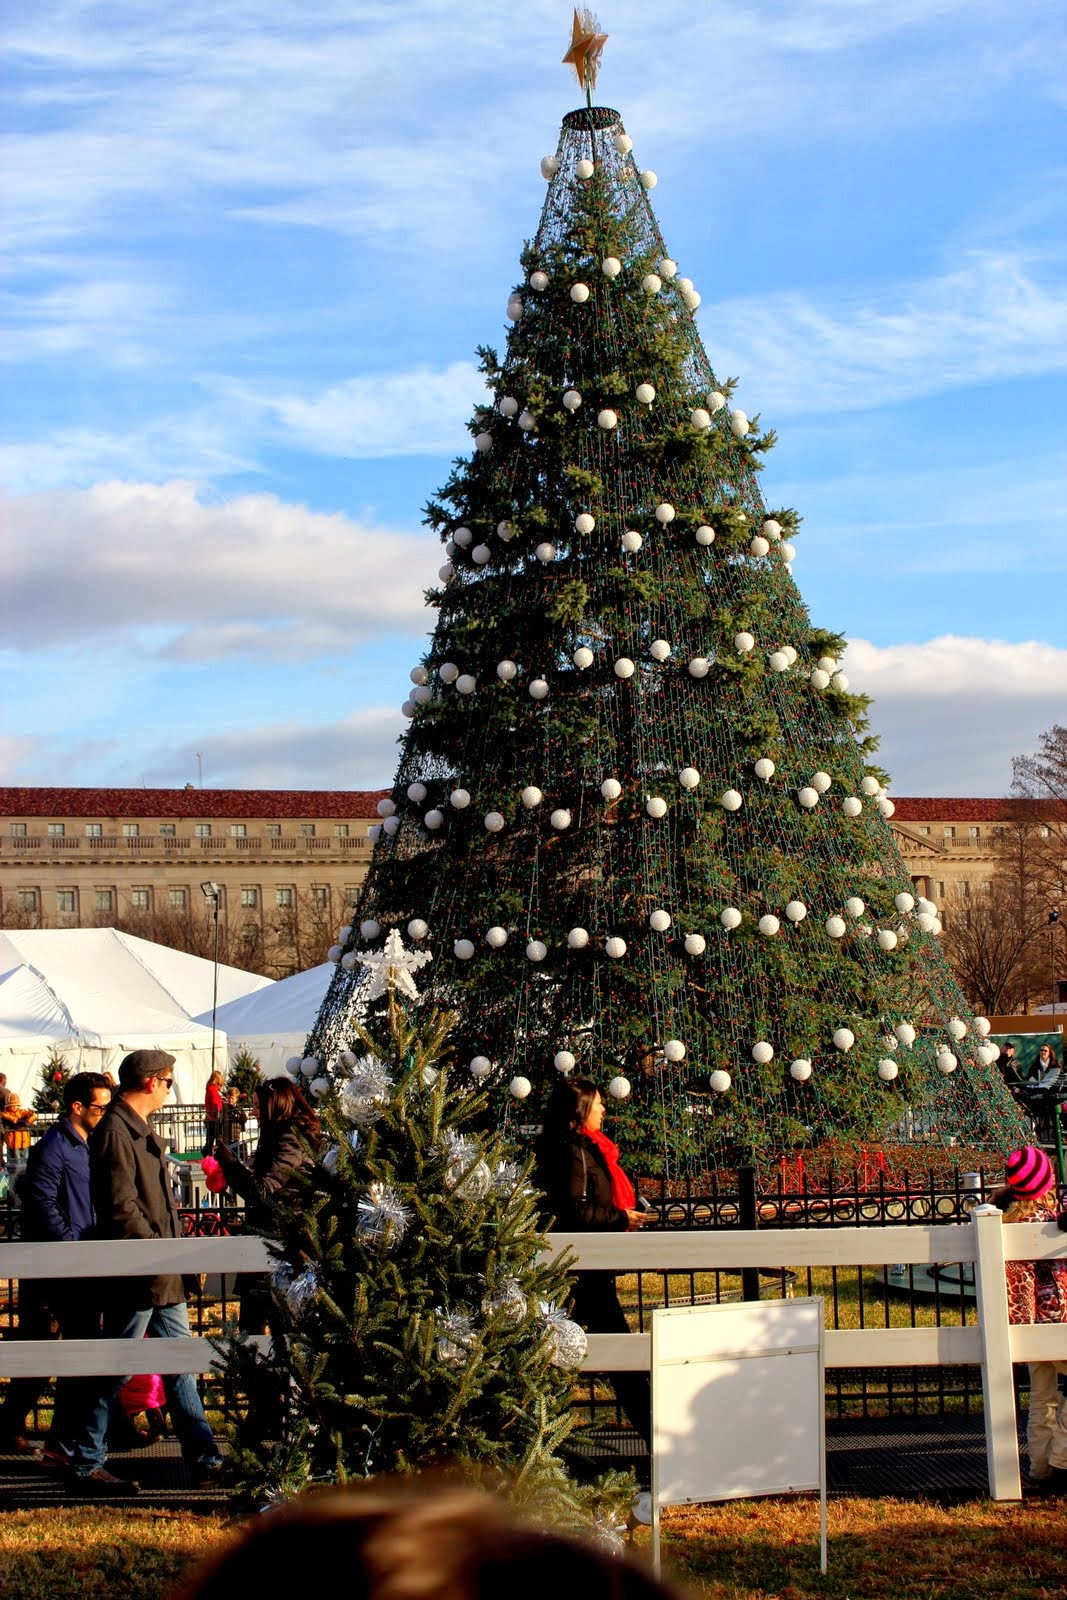 Delancey Street Christmas Trees.Here And There The National Christmas Tree